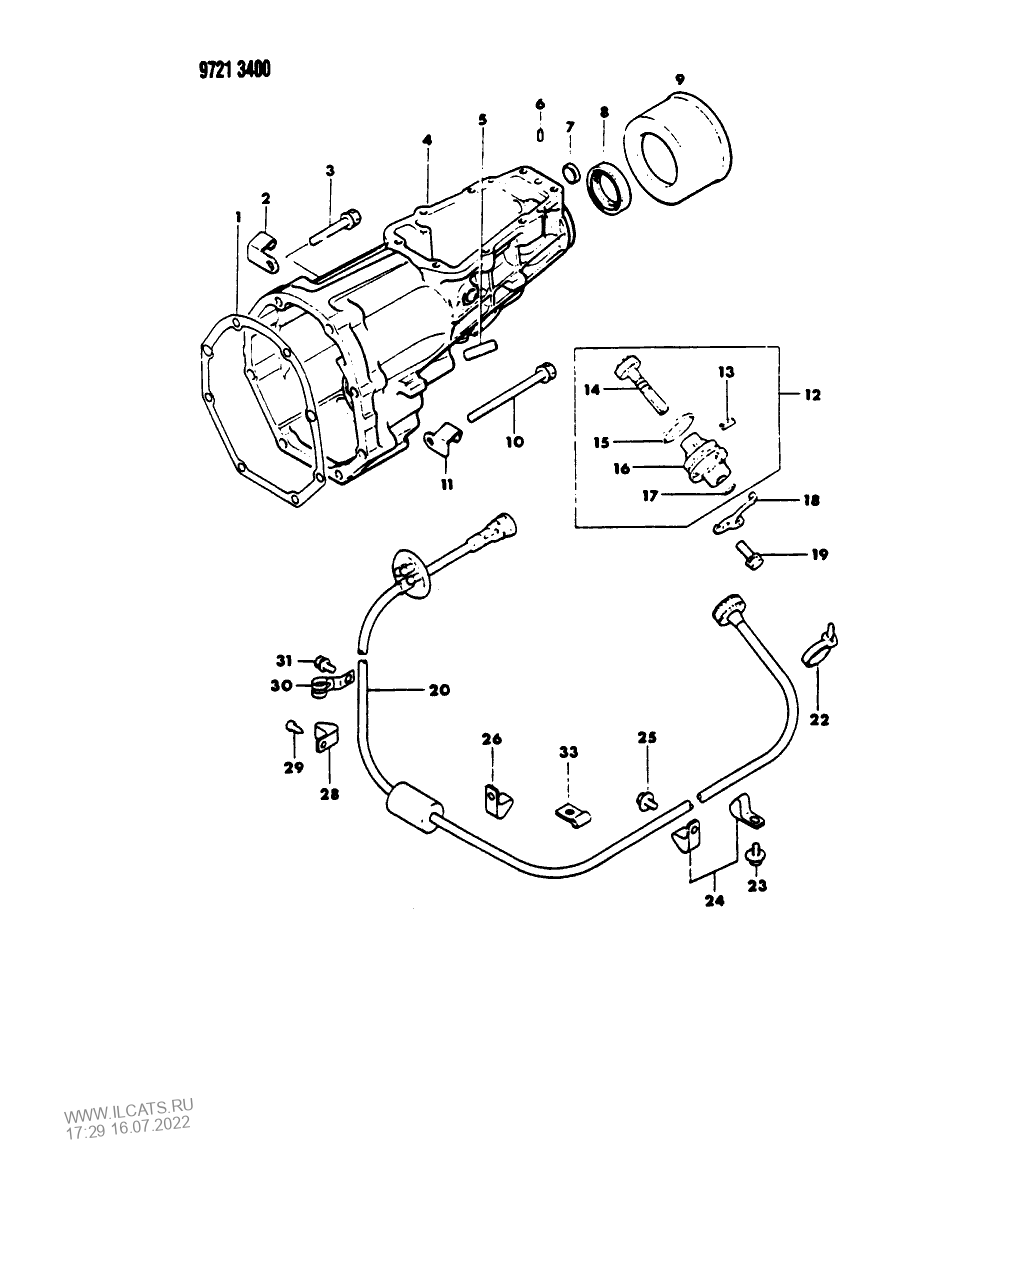 EXTENSION, SPEEDOMETER CABLE AND PINION, MANUAL TRANSMISSION, 5